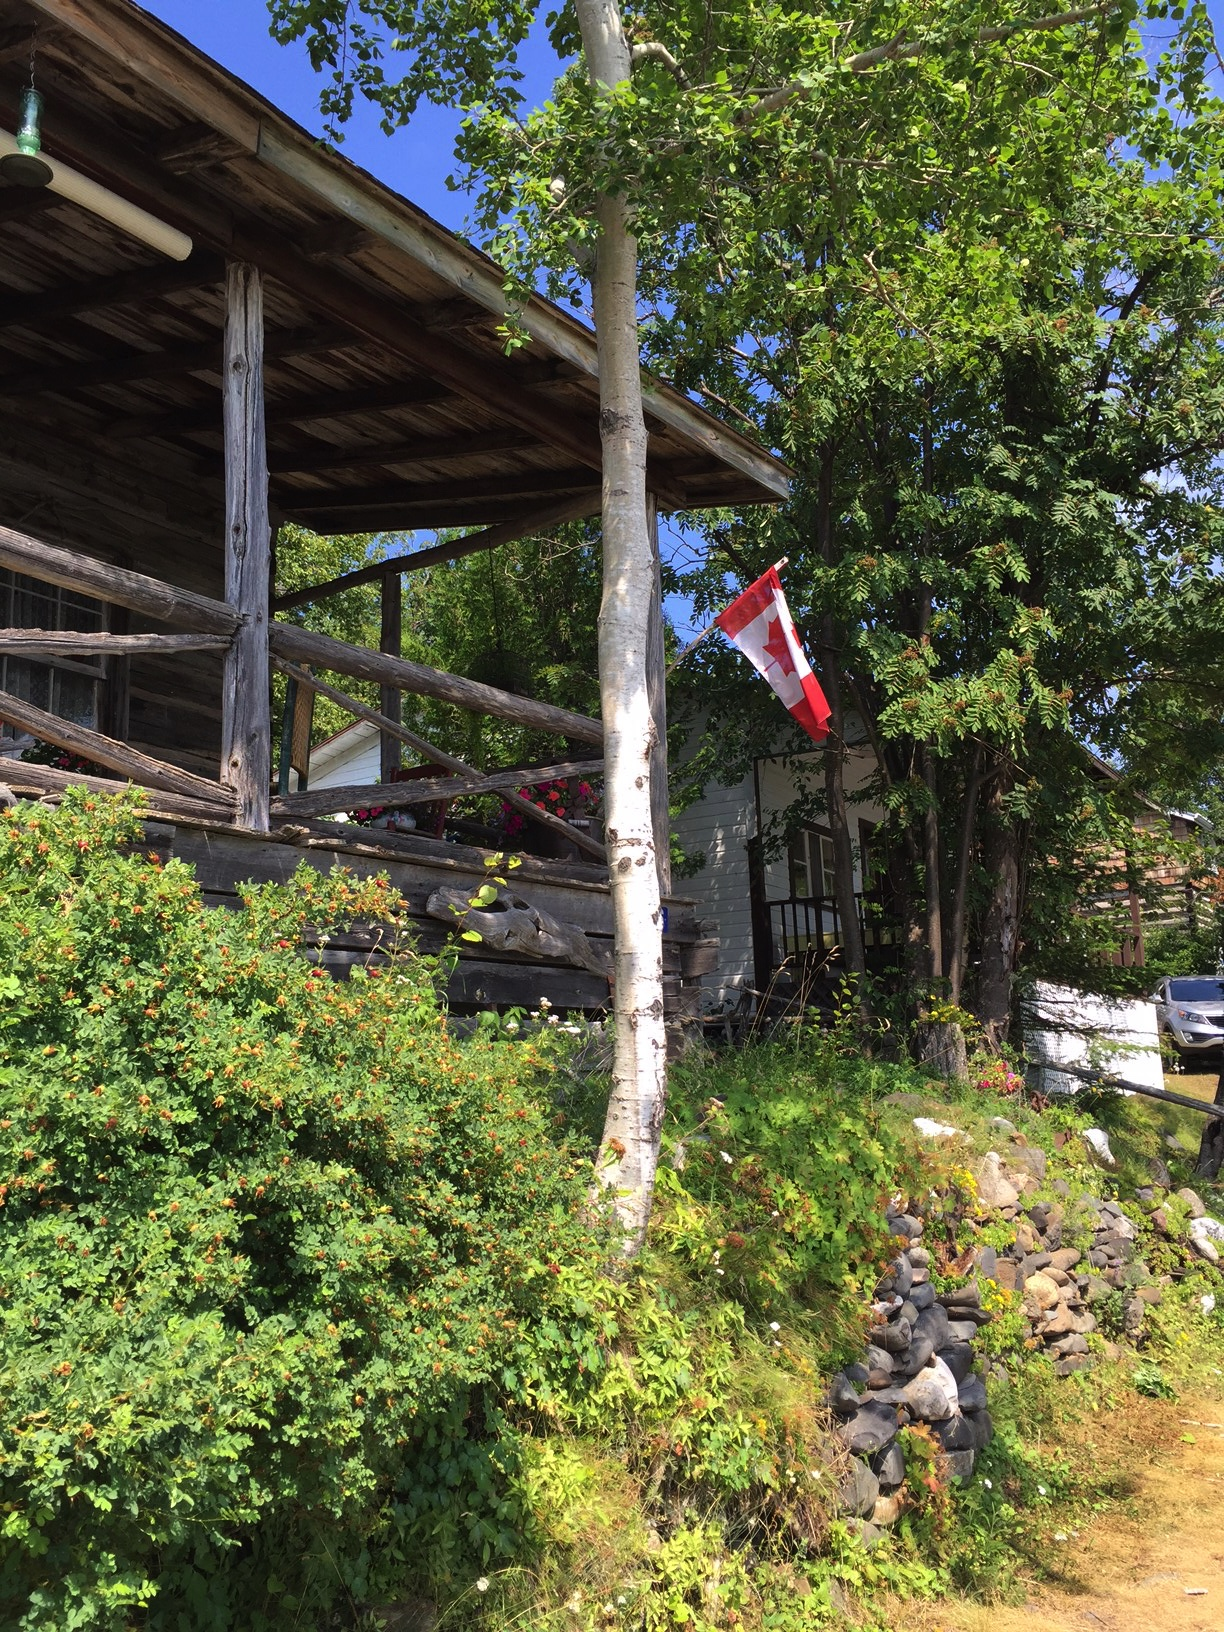 rustic cabin with Canadian flag